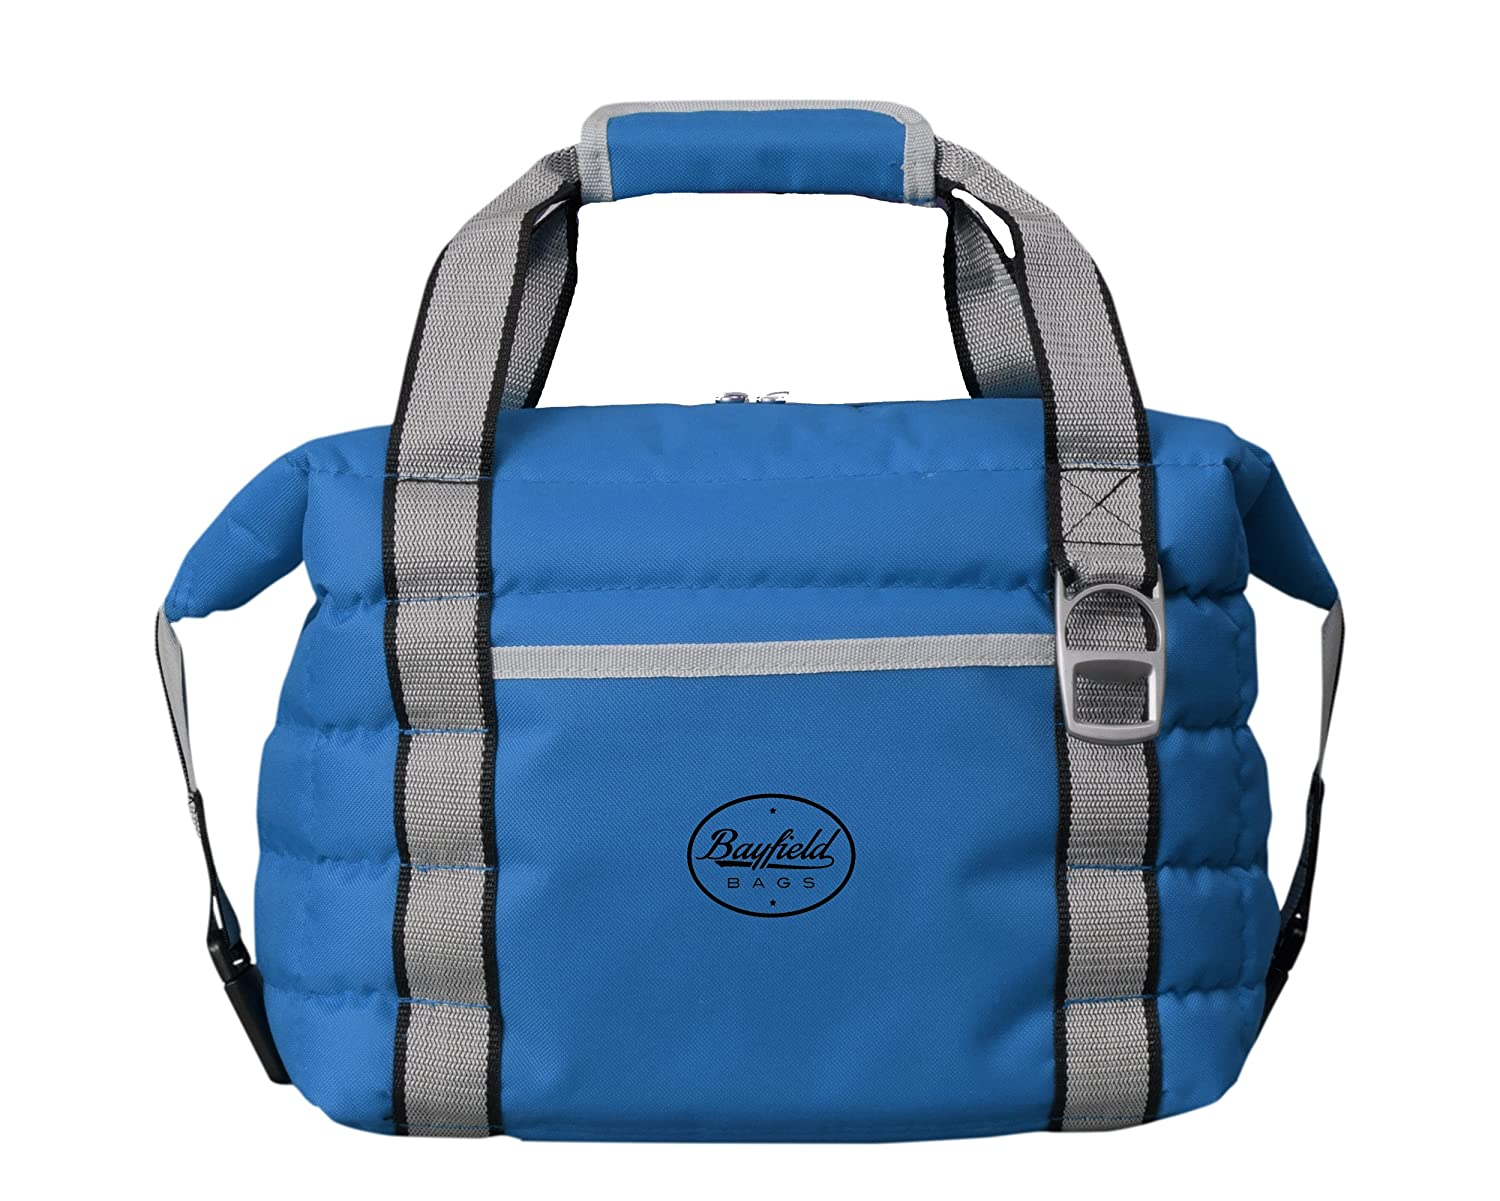 Bayfield Bags Heavy-Duty Soft Sided Collapsible Cooler Bag Holds 16 Cans -Lightweight Thermal Cooler with Thick Lining & Insulation